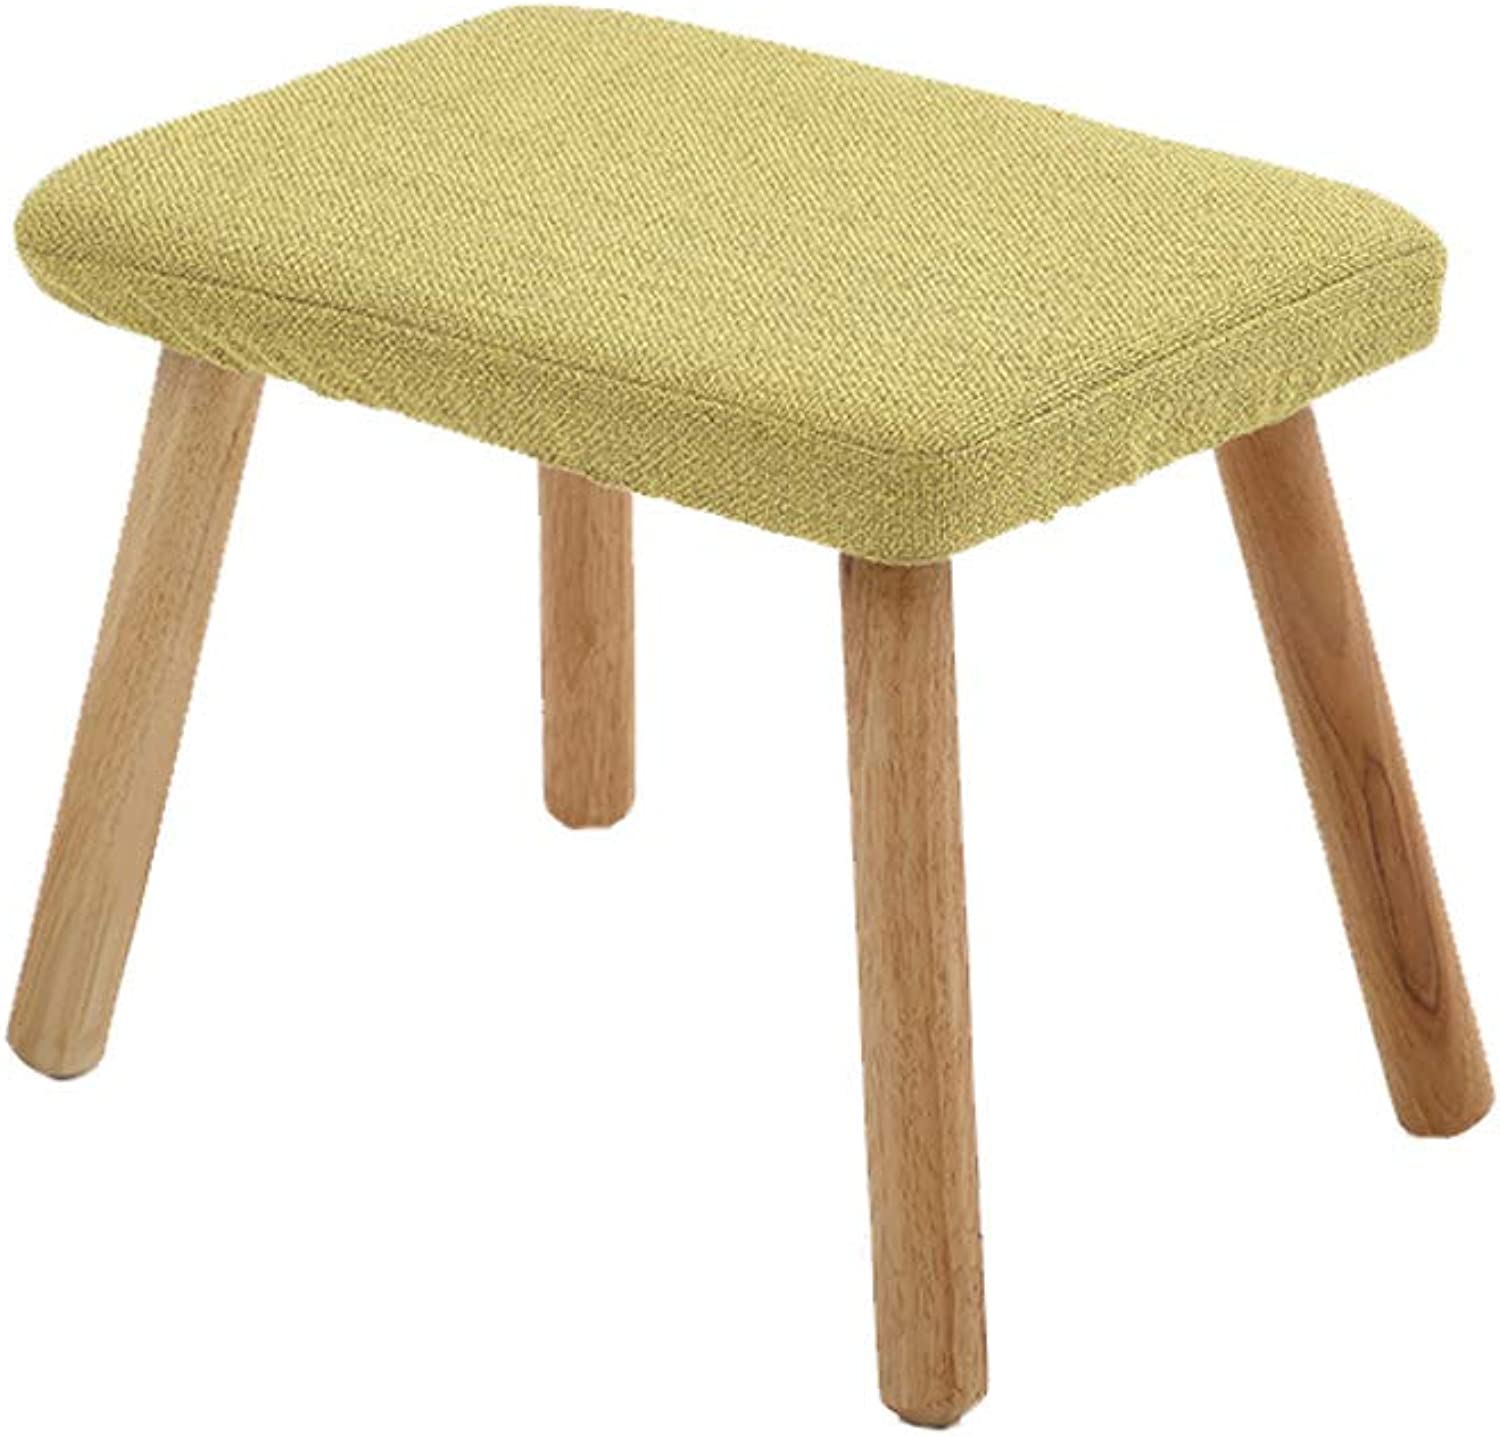 HLJ Creative Home Adult Change shoes Stool Personality Solid Wood Tea Table Stool Simple Sofa Change shoes Bench